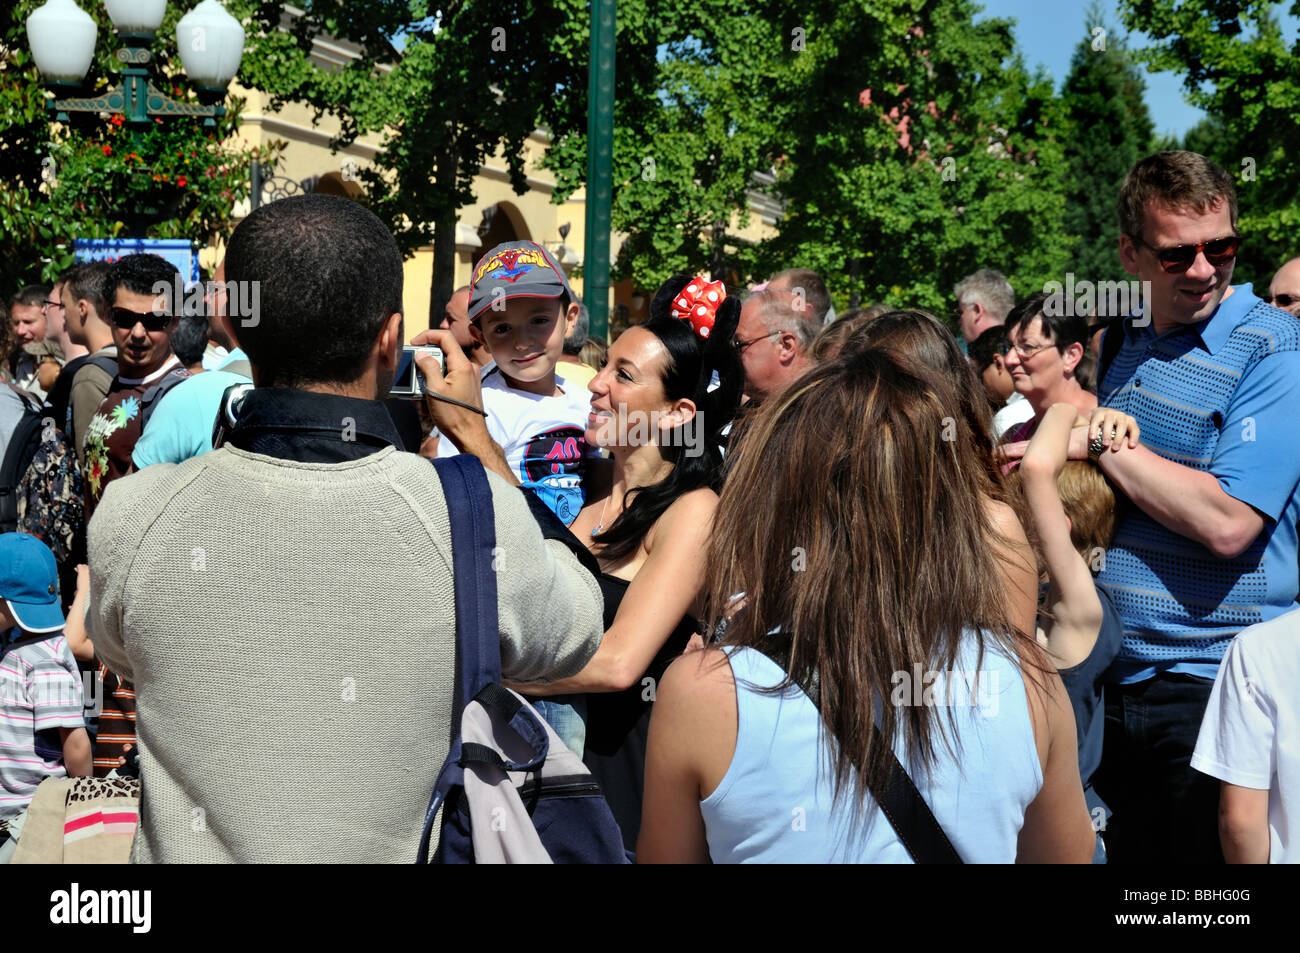 Paris France, Theme Parks, People Visiting Disneyland Paris Entrance, Father Taking Photos of Family Stock Photo